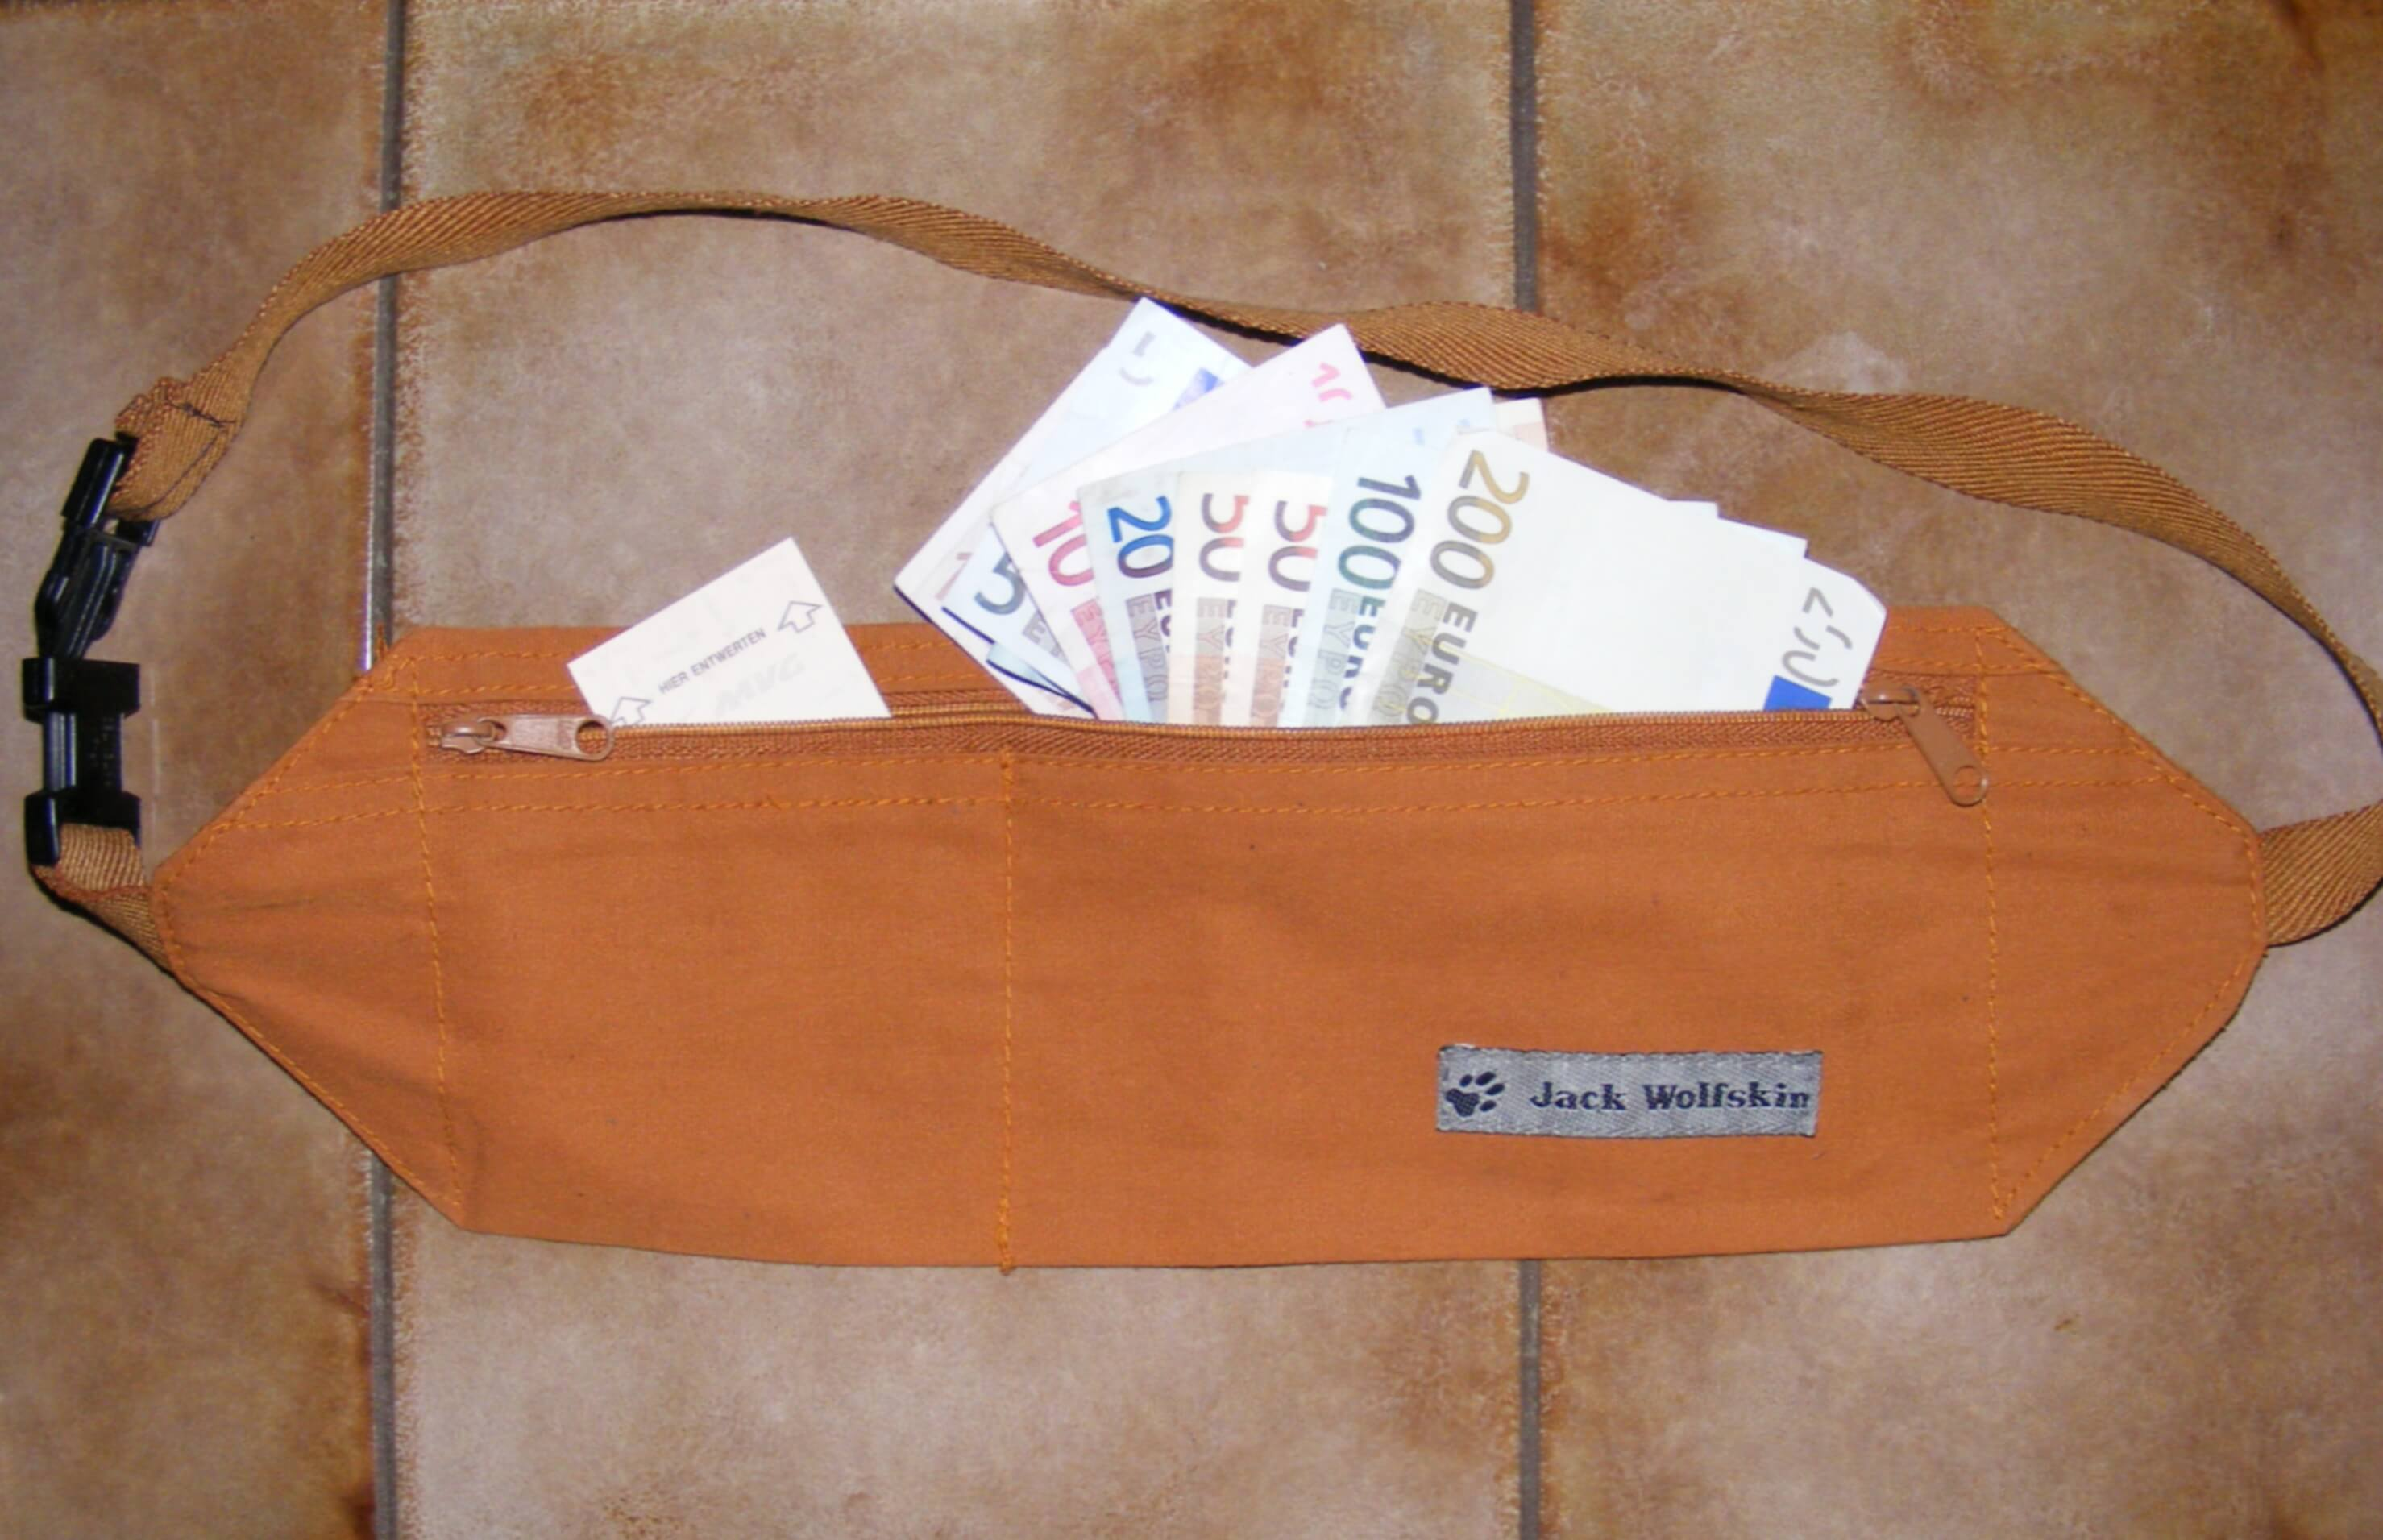 Euros sticking out of Jack Wolfskin money belt